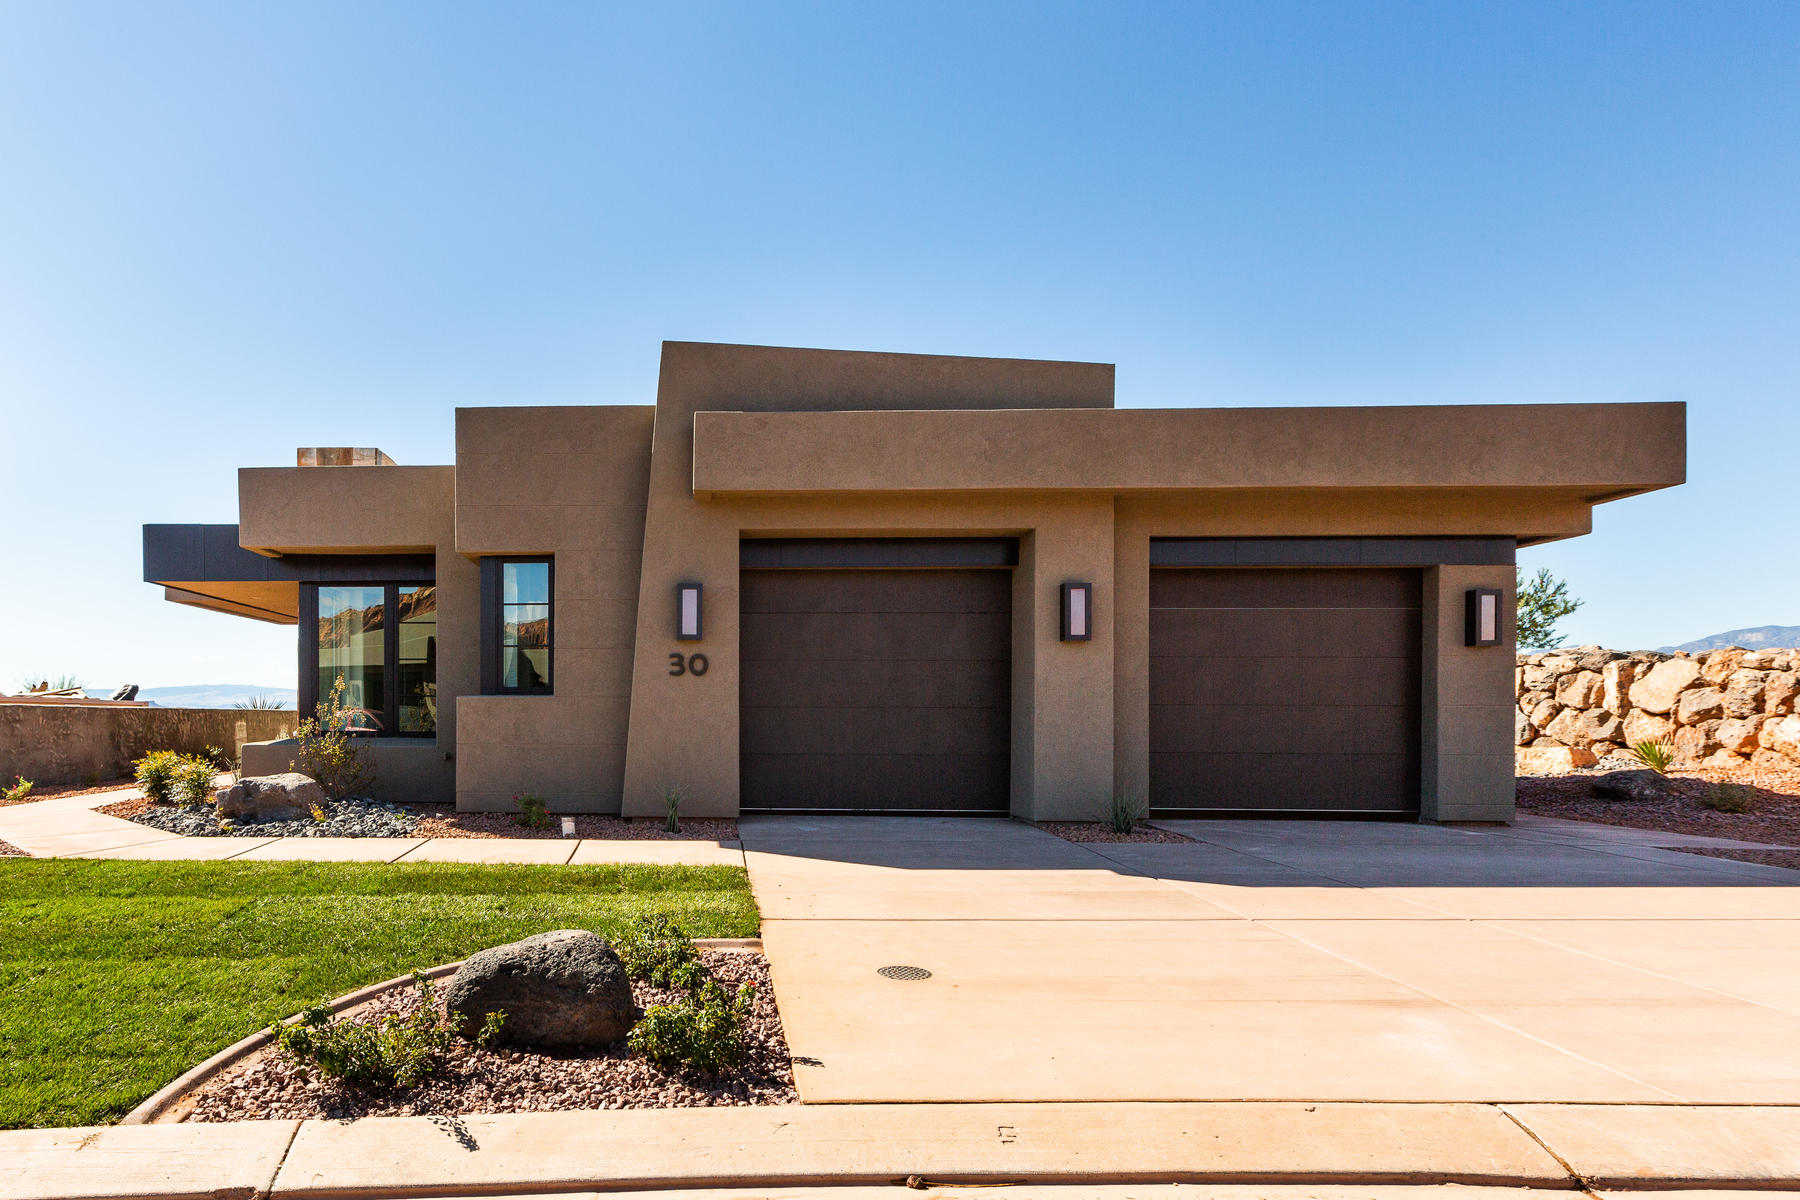 Single Family Homes for Active at The Getaway 1355 E Snow Canyon Parkway #30 Ivins, Utah 84738 United States